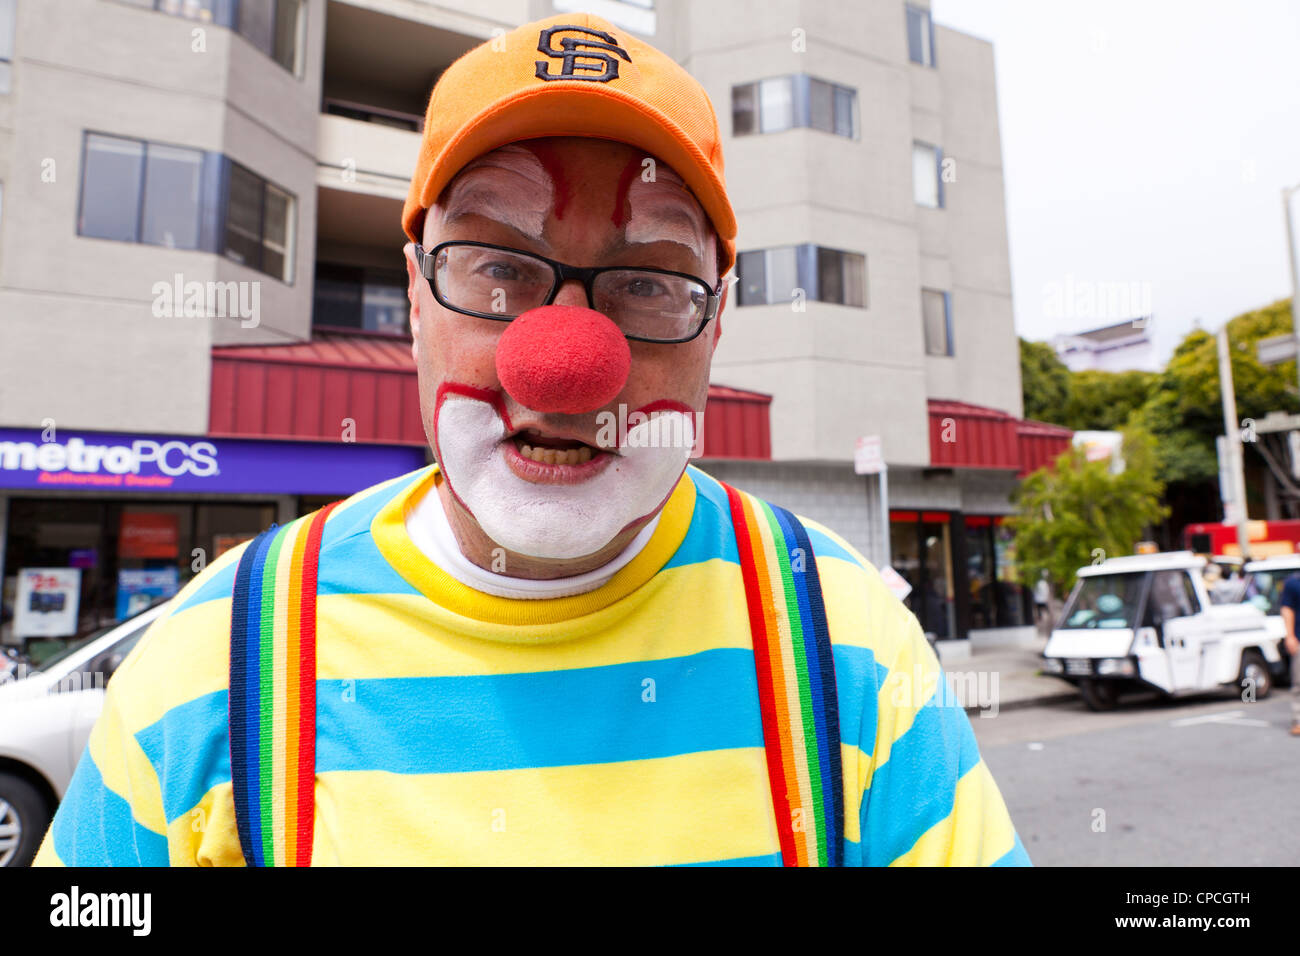 Kenny the Clown - Stock Image